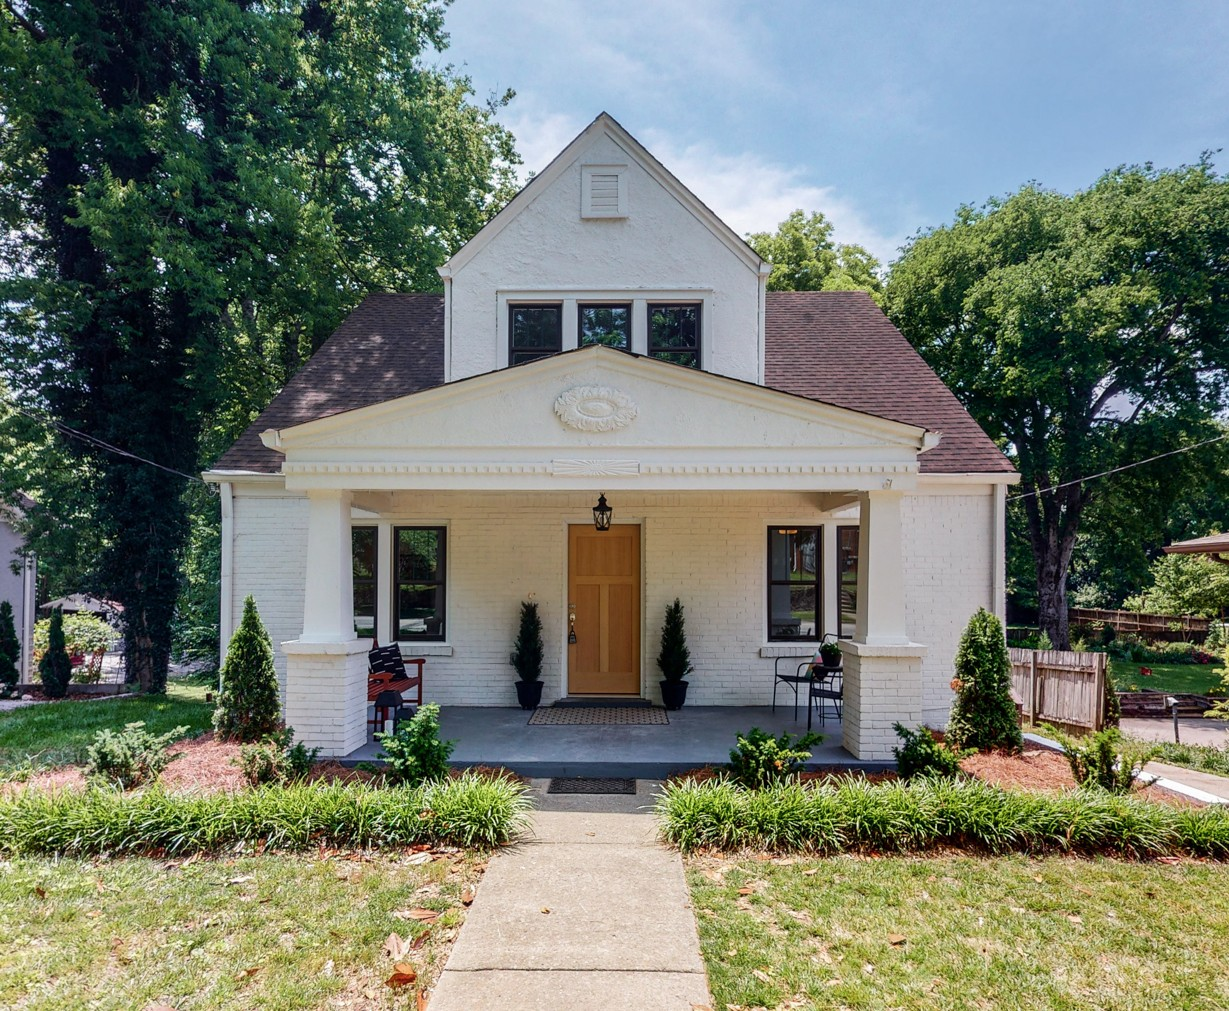 This 1925 Craftsman has been fully renovated to restore its charm. The 4 Bed/3 Bath home has abundant natural light & an open concept. The original hardwoods have been refinished to capture the elegance of the almost 100 year old home. The oversized Sylvan Park lot is prepped with utilities behind the creek to allow for the building of a Pool/Pool House or DADU. This feature is unique to this property & allows you to create an oasis in your backyard.